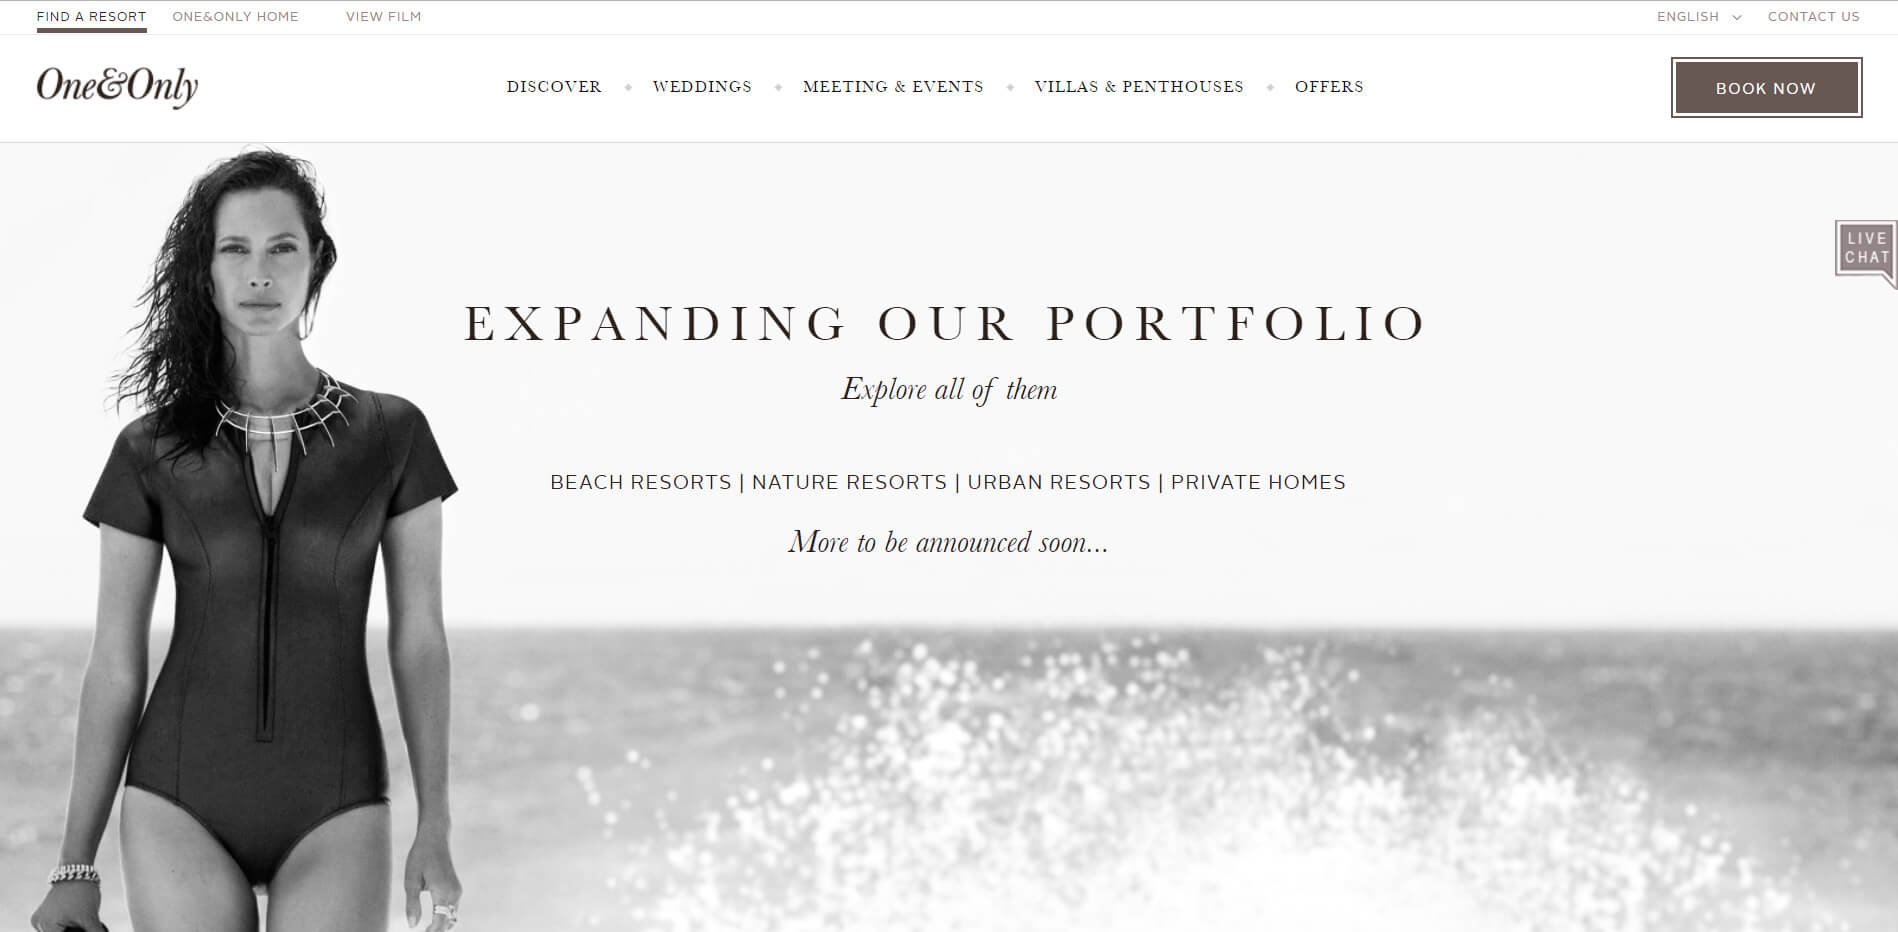 One&Only Resorts homepage design